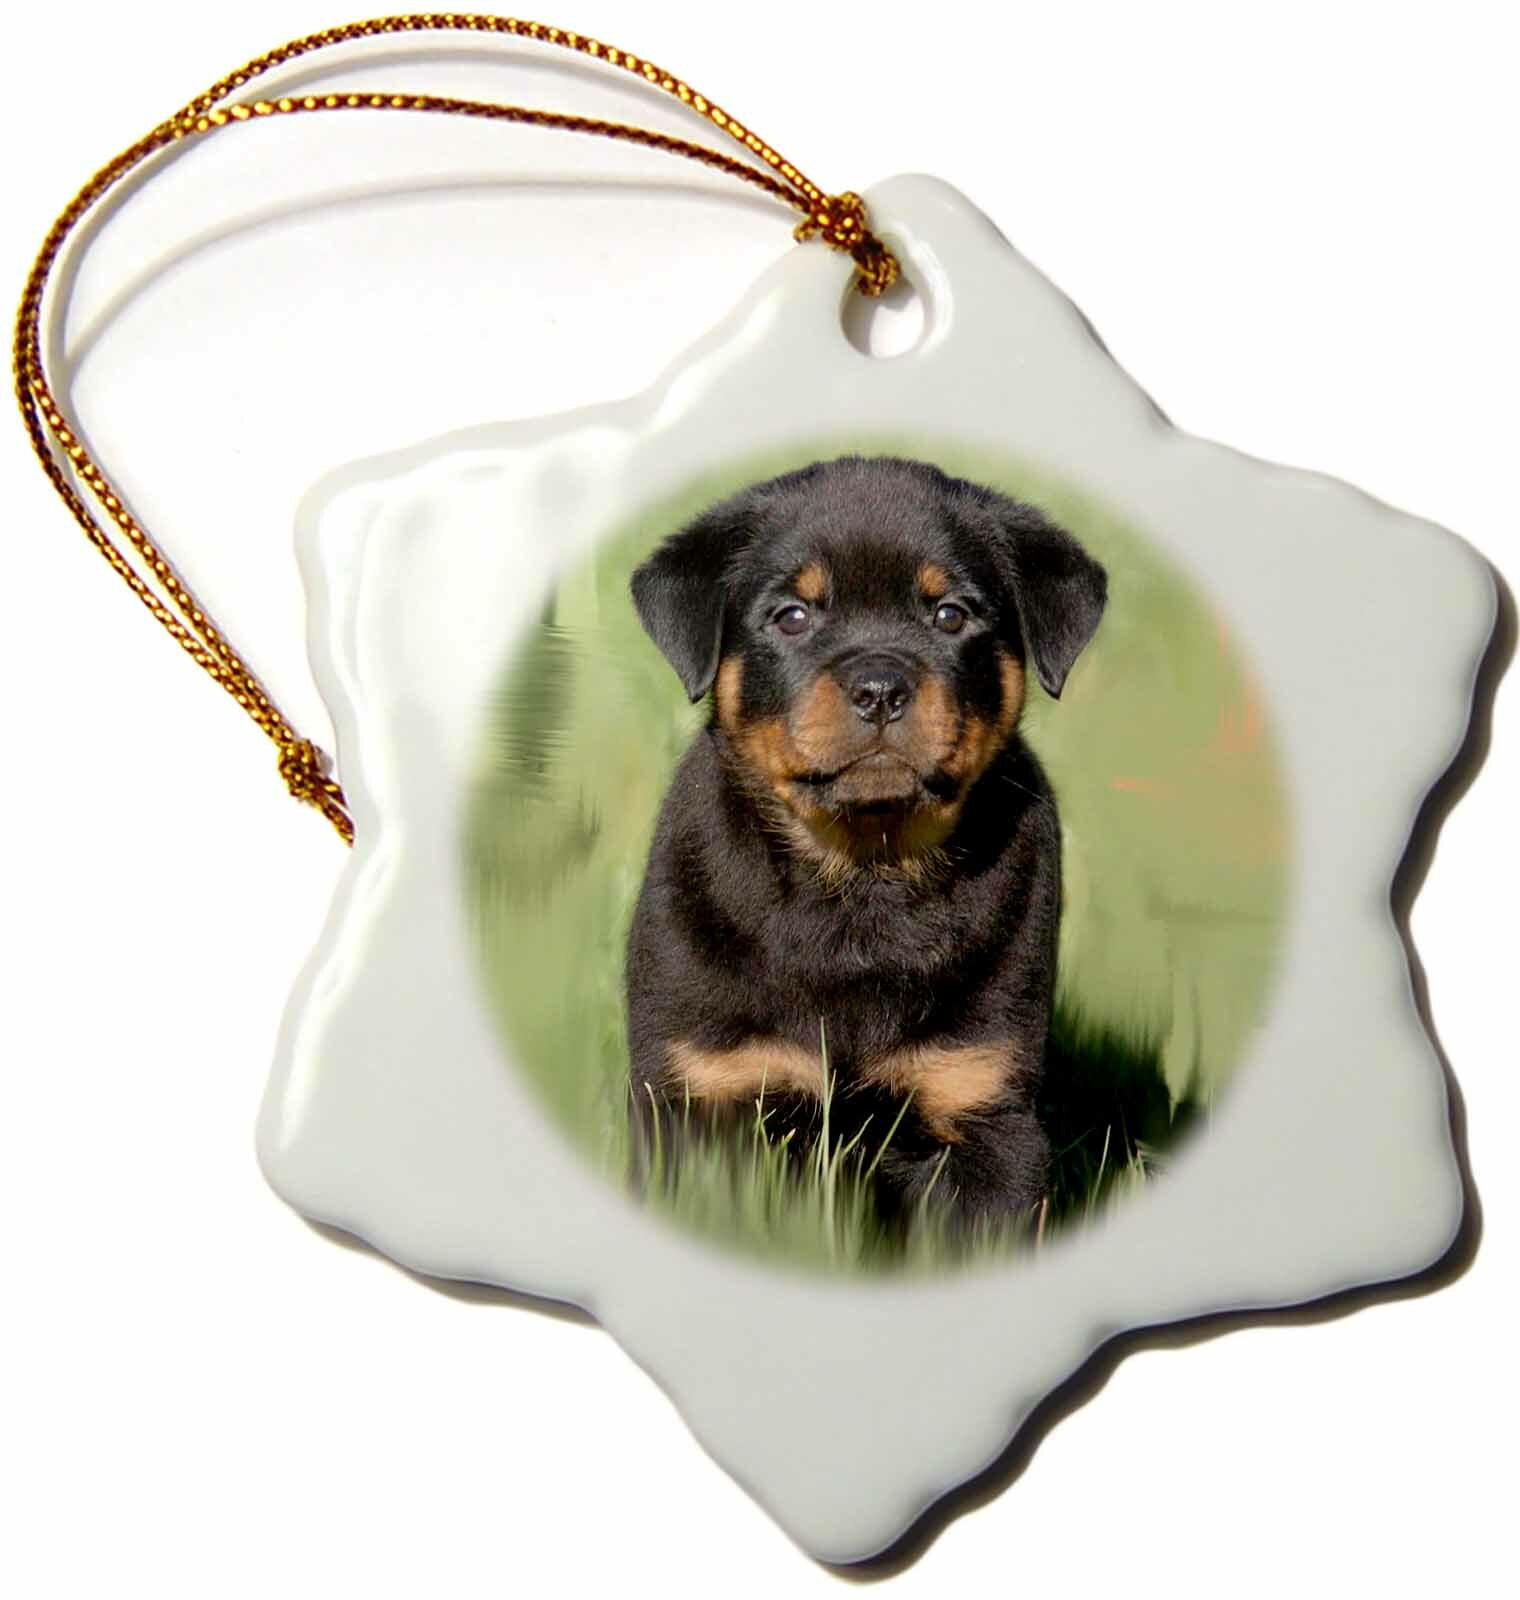 The Holiday Aisle Rottweiler Puppy Holiday Shaped Ornament Wayfair